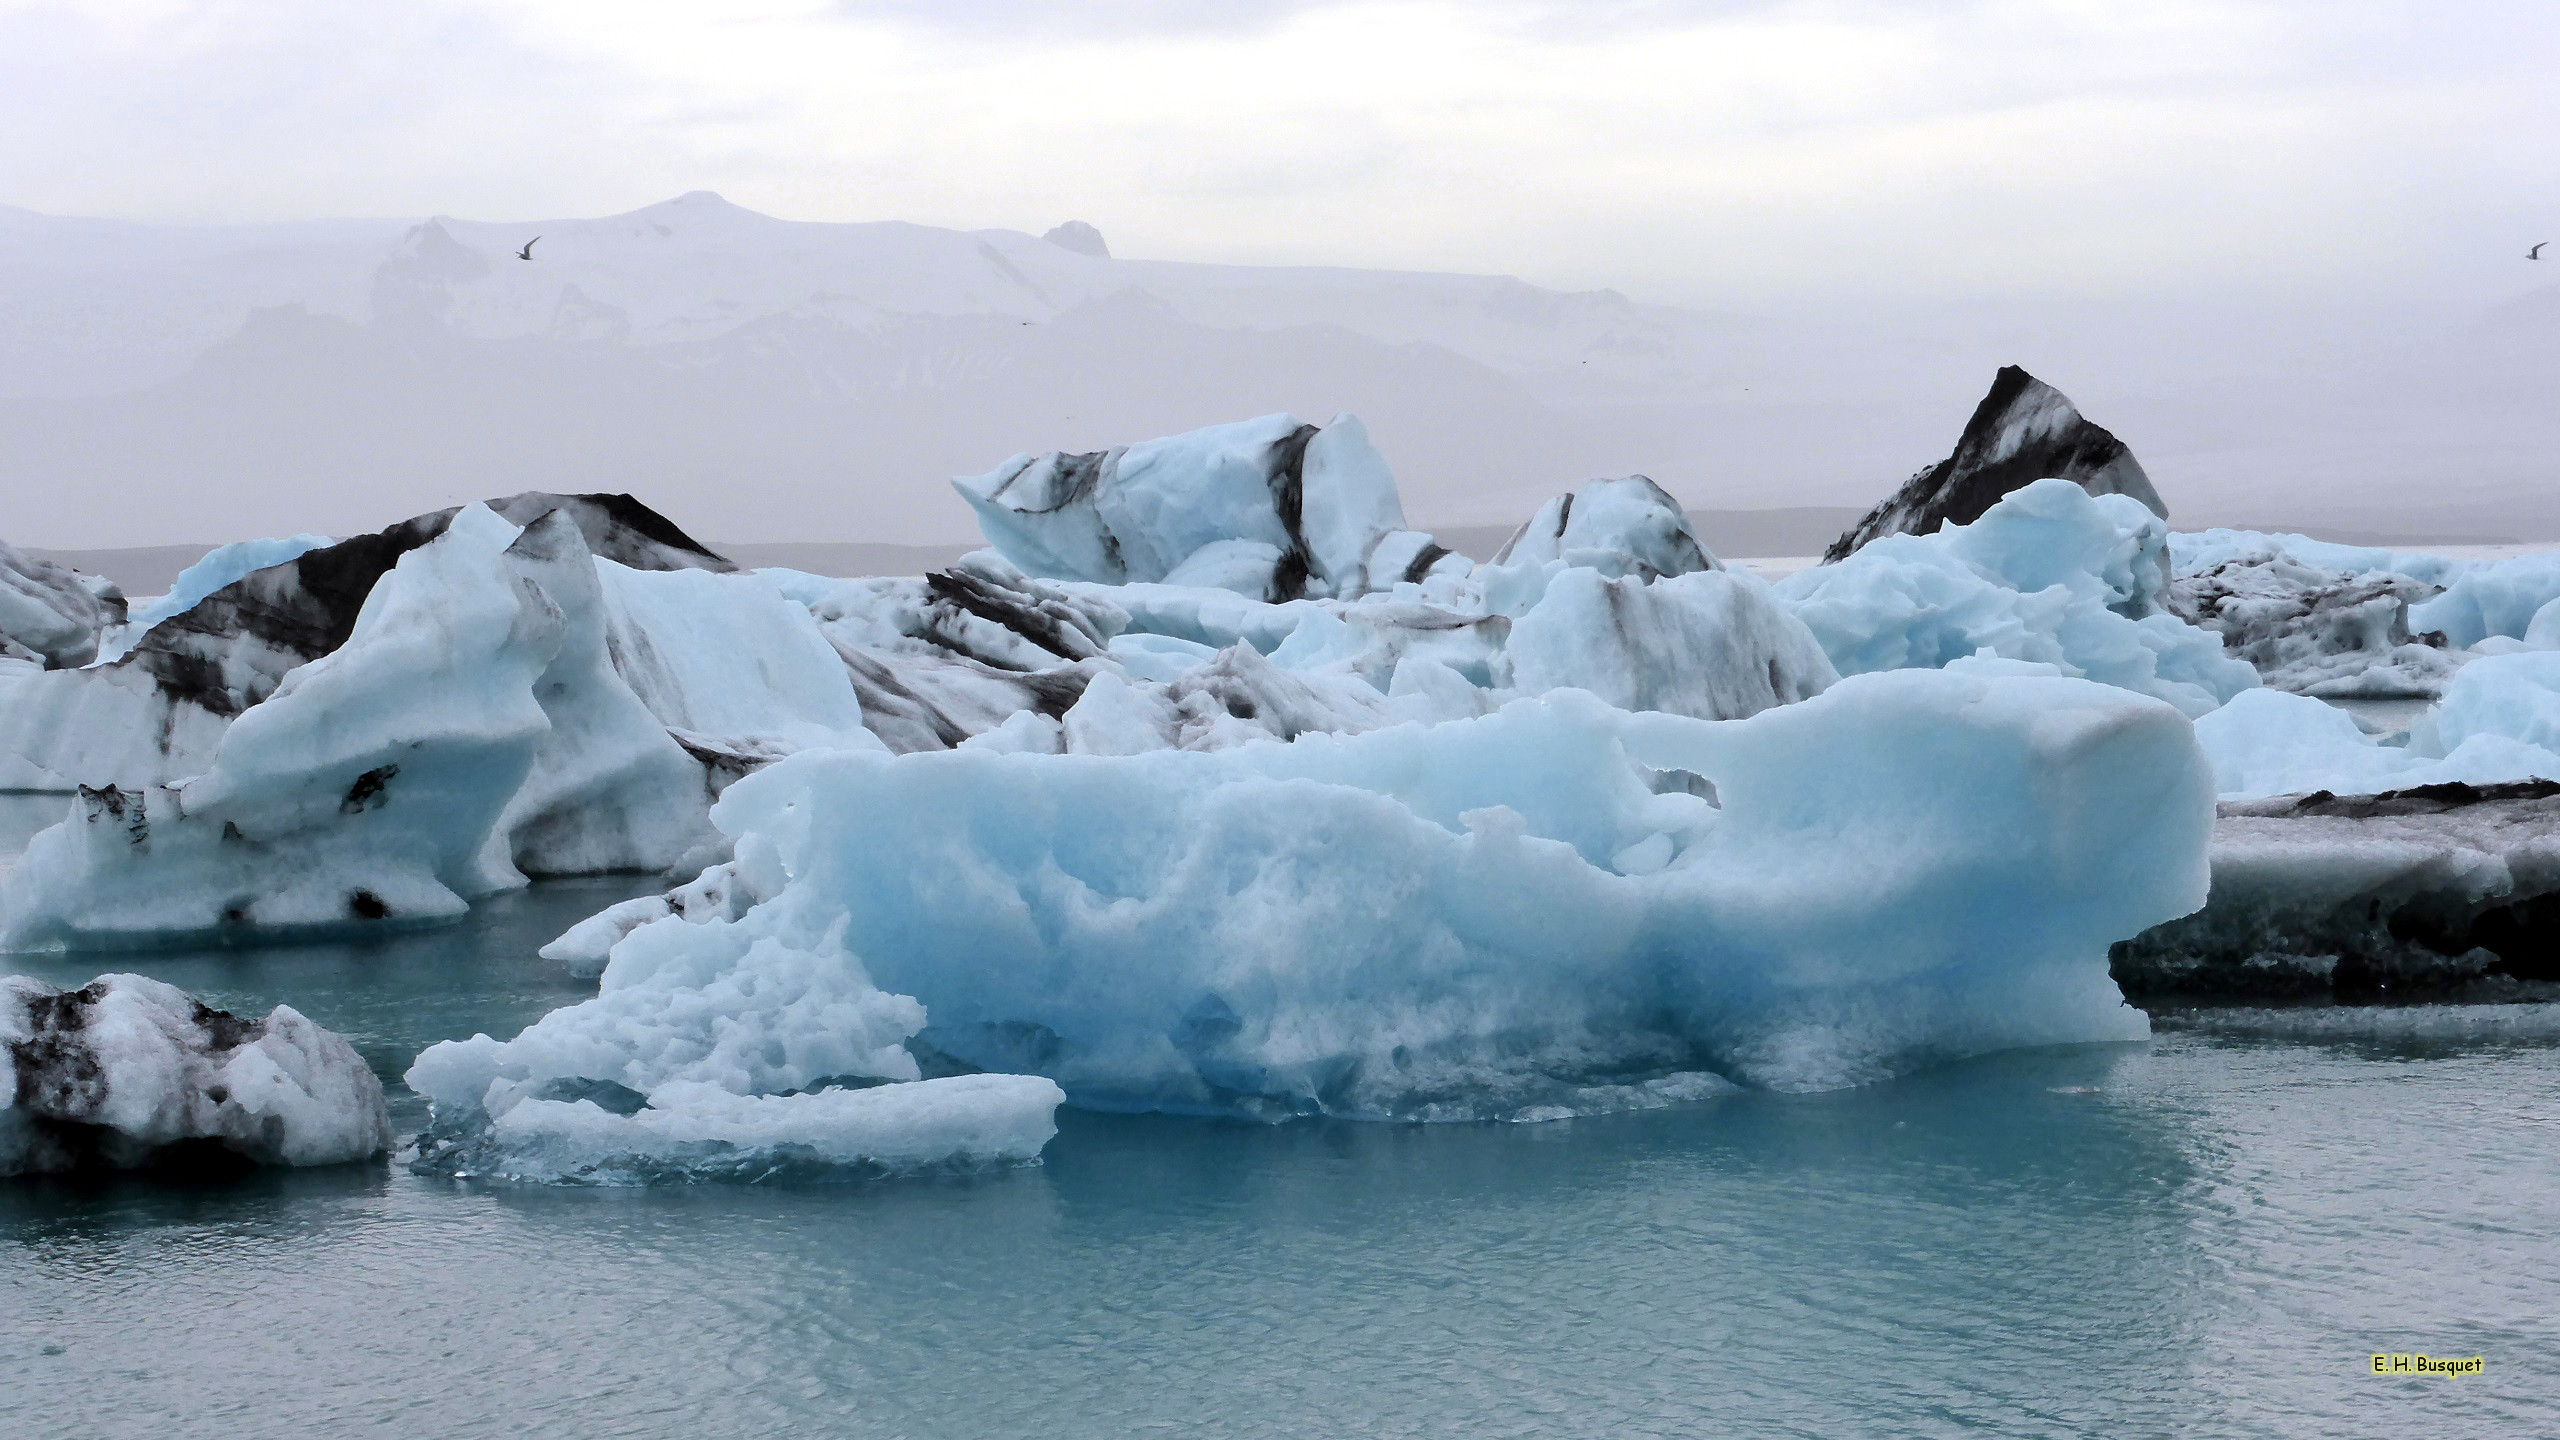 2560x1440 HD wallpaper ice floes in Iceland